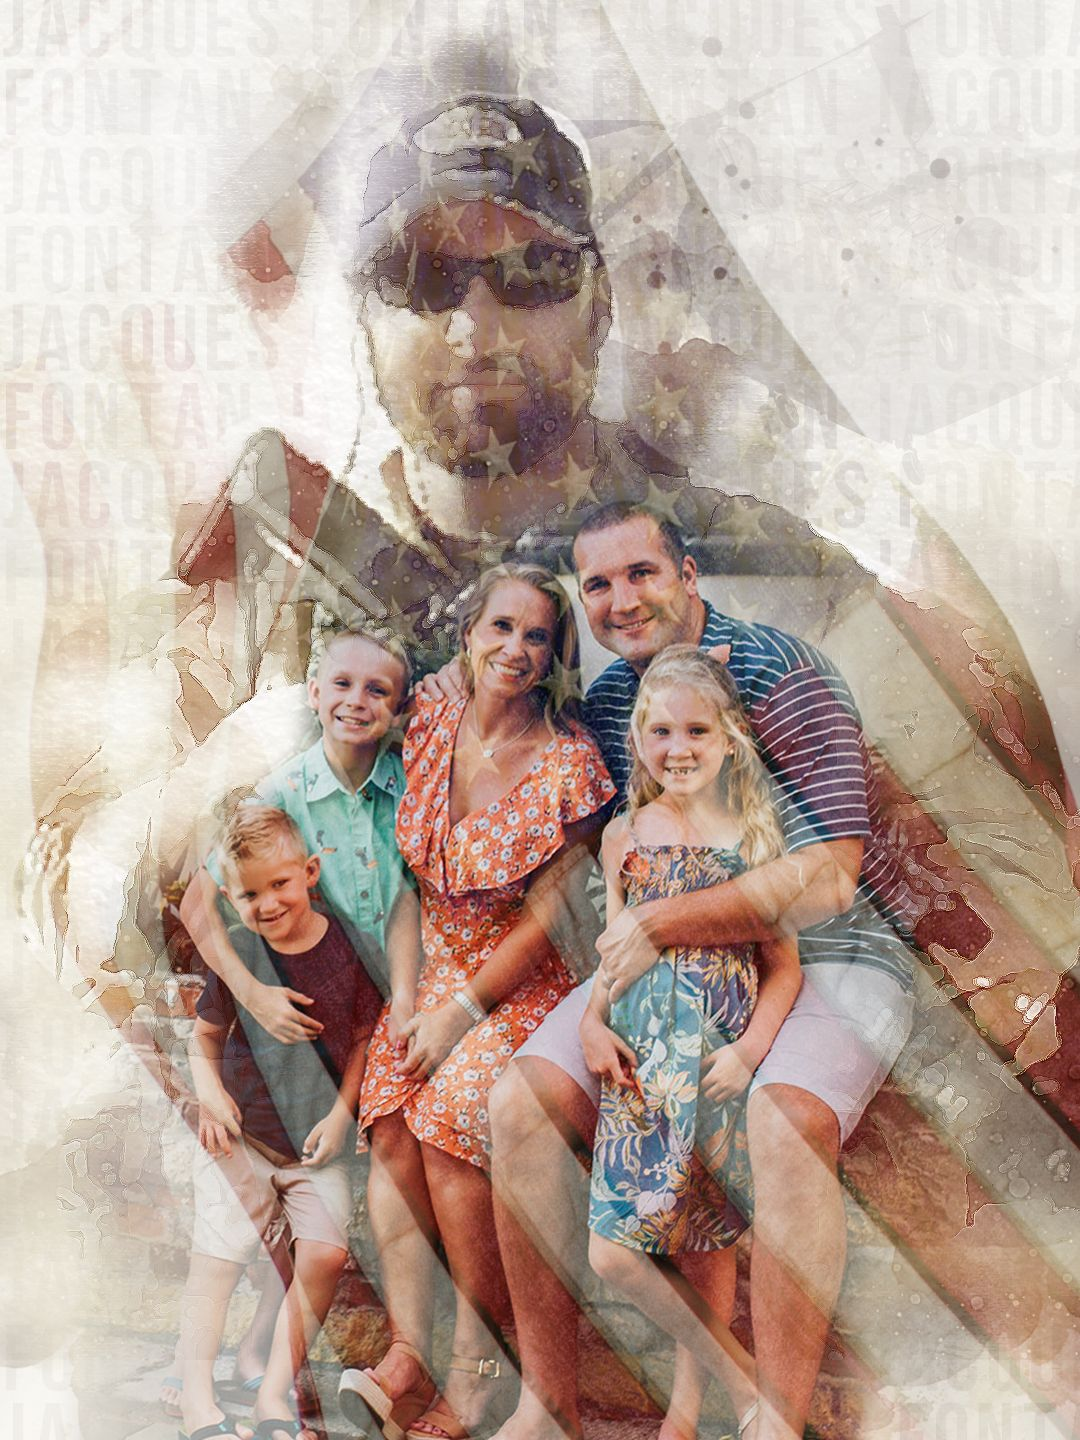 Char Westfall: Wife, Mom, Surviving Spouse of Navy SEAL Jacques Fontan, Author of A Beautiful Tragedy